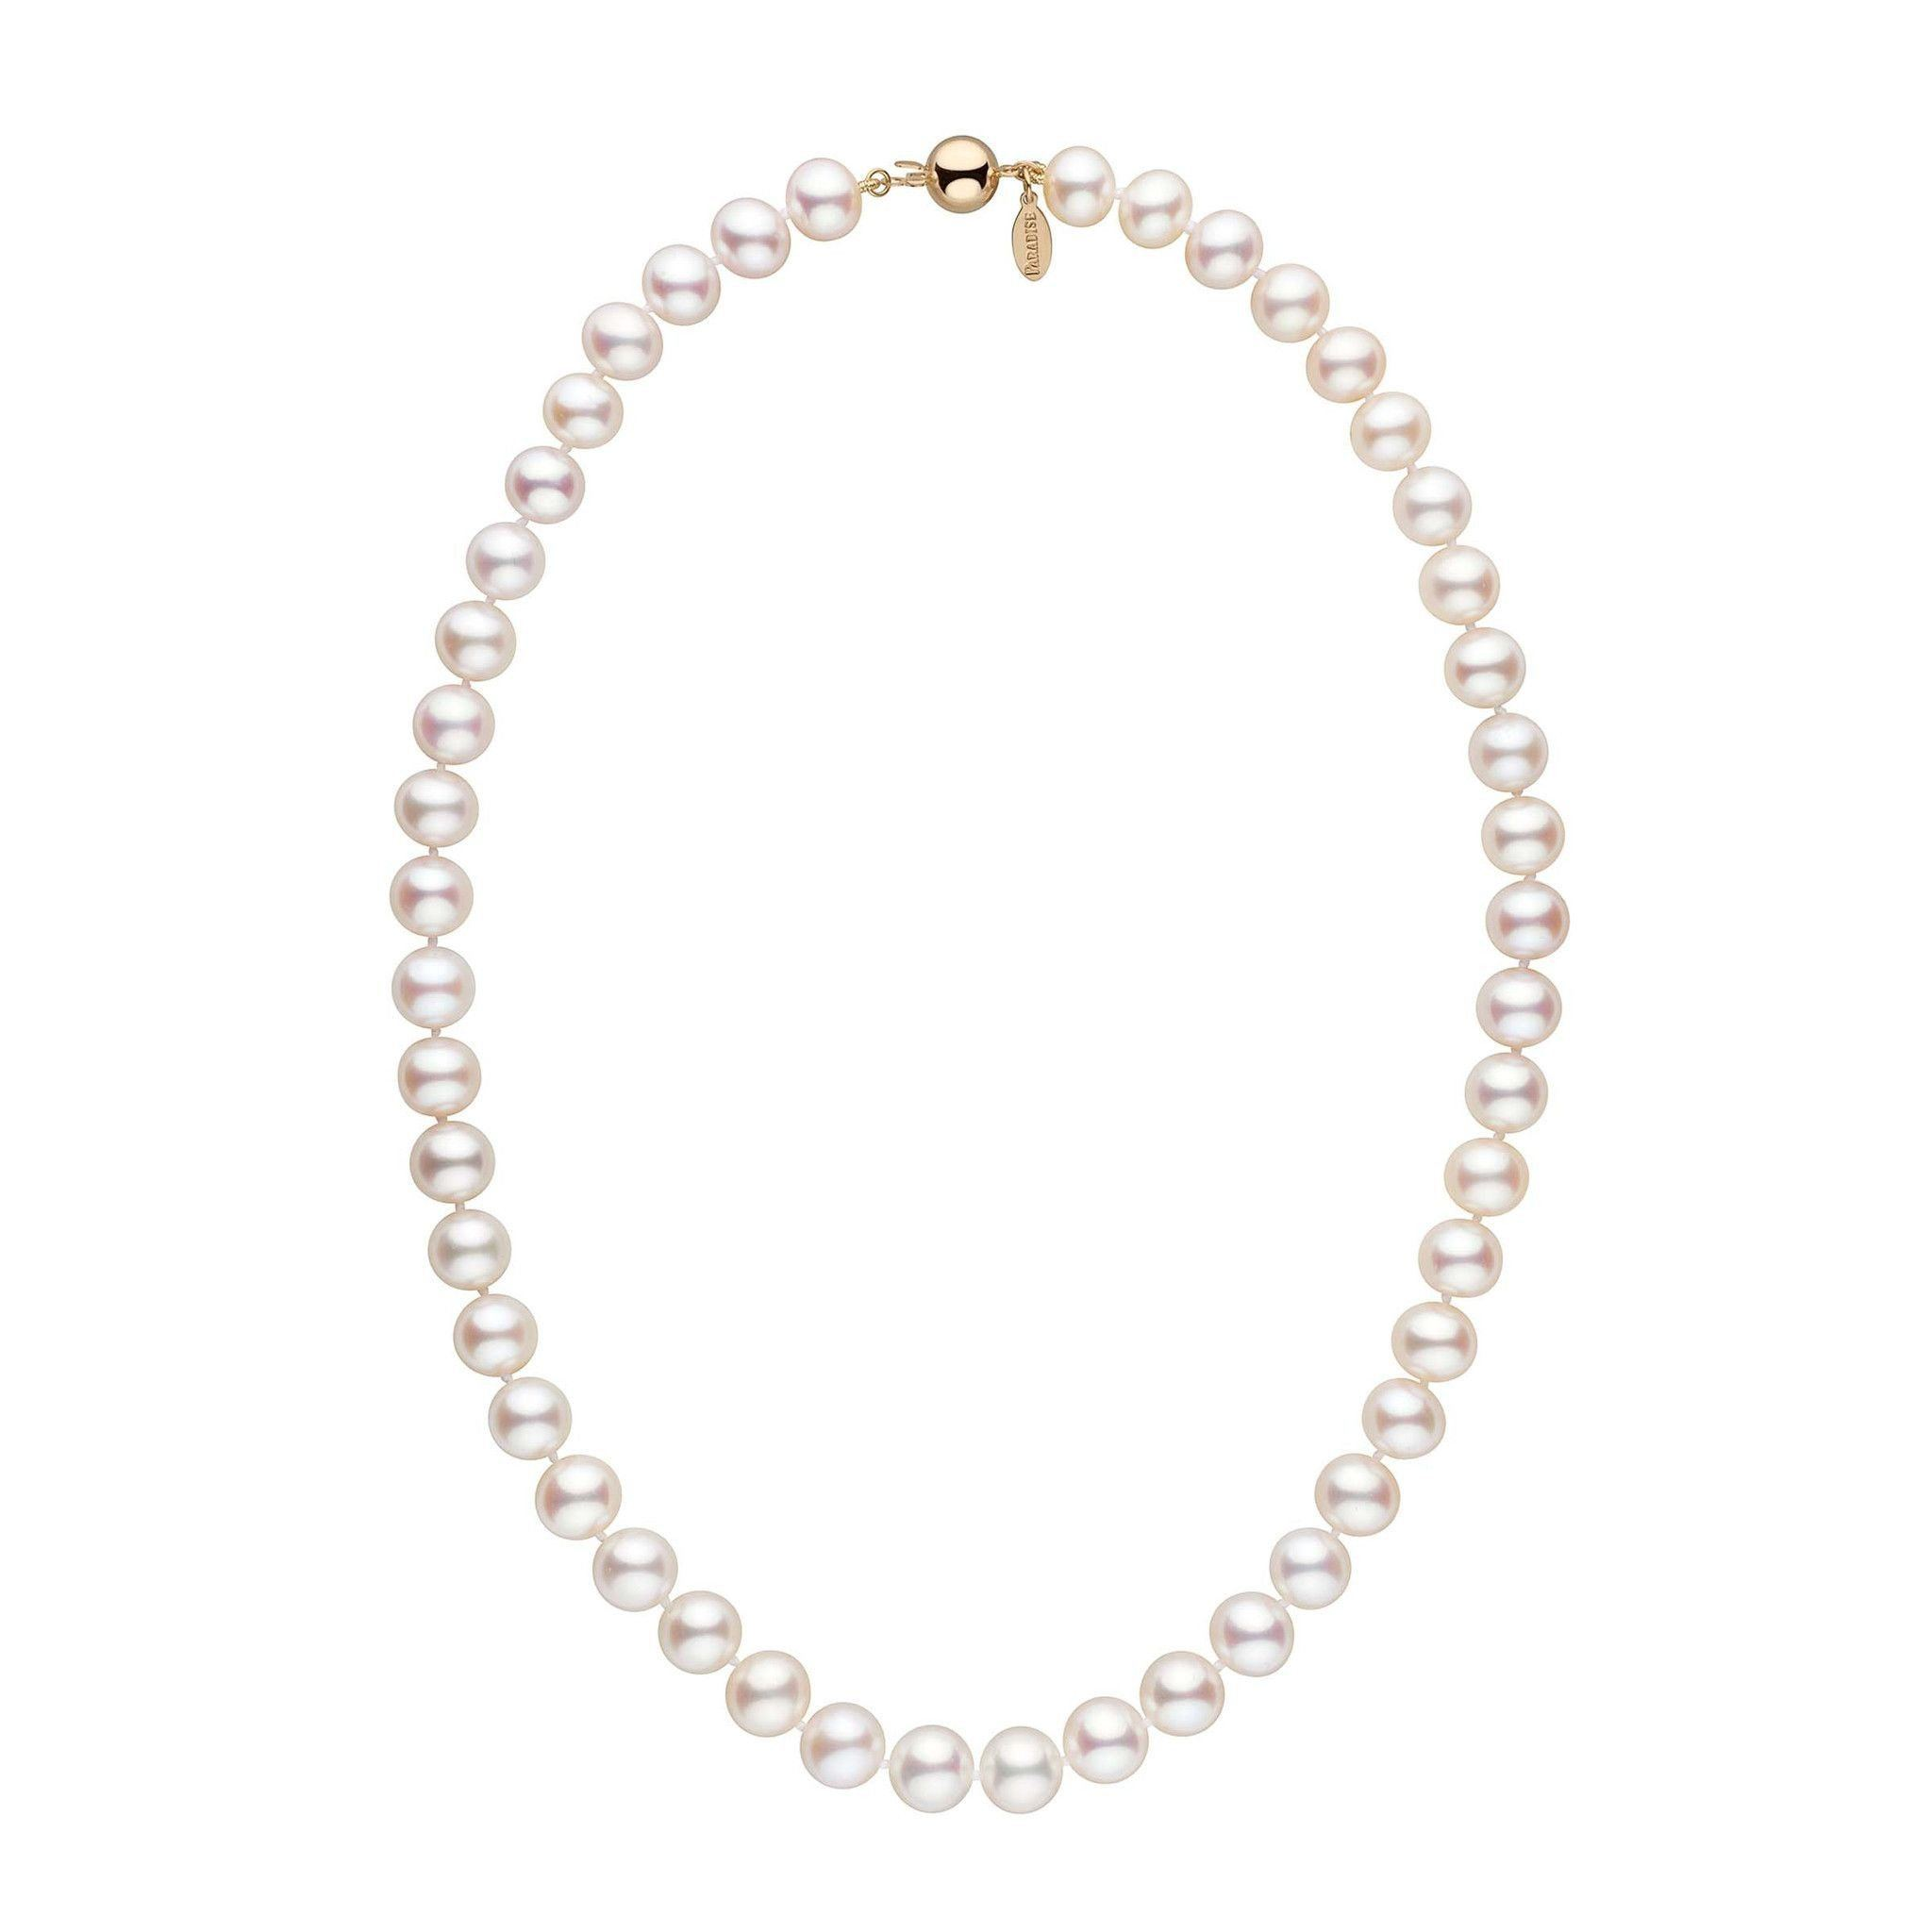 9.0-9.5 mm 18 Inch White Freshadama Freshwater Pearl Necklace